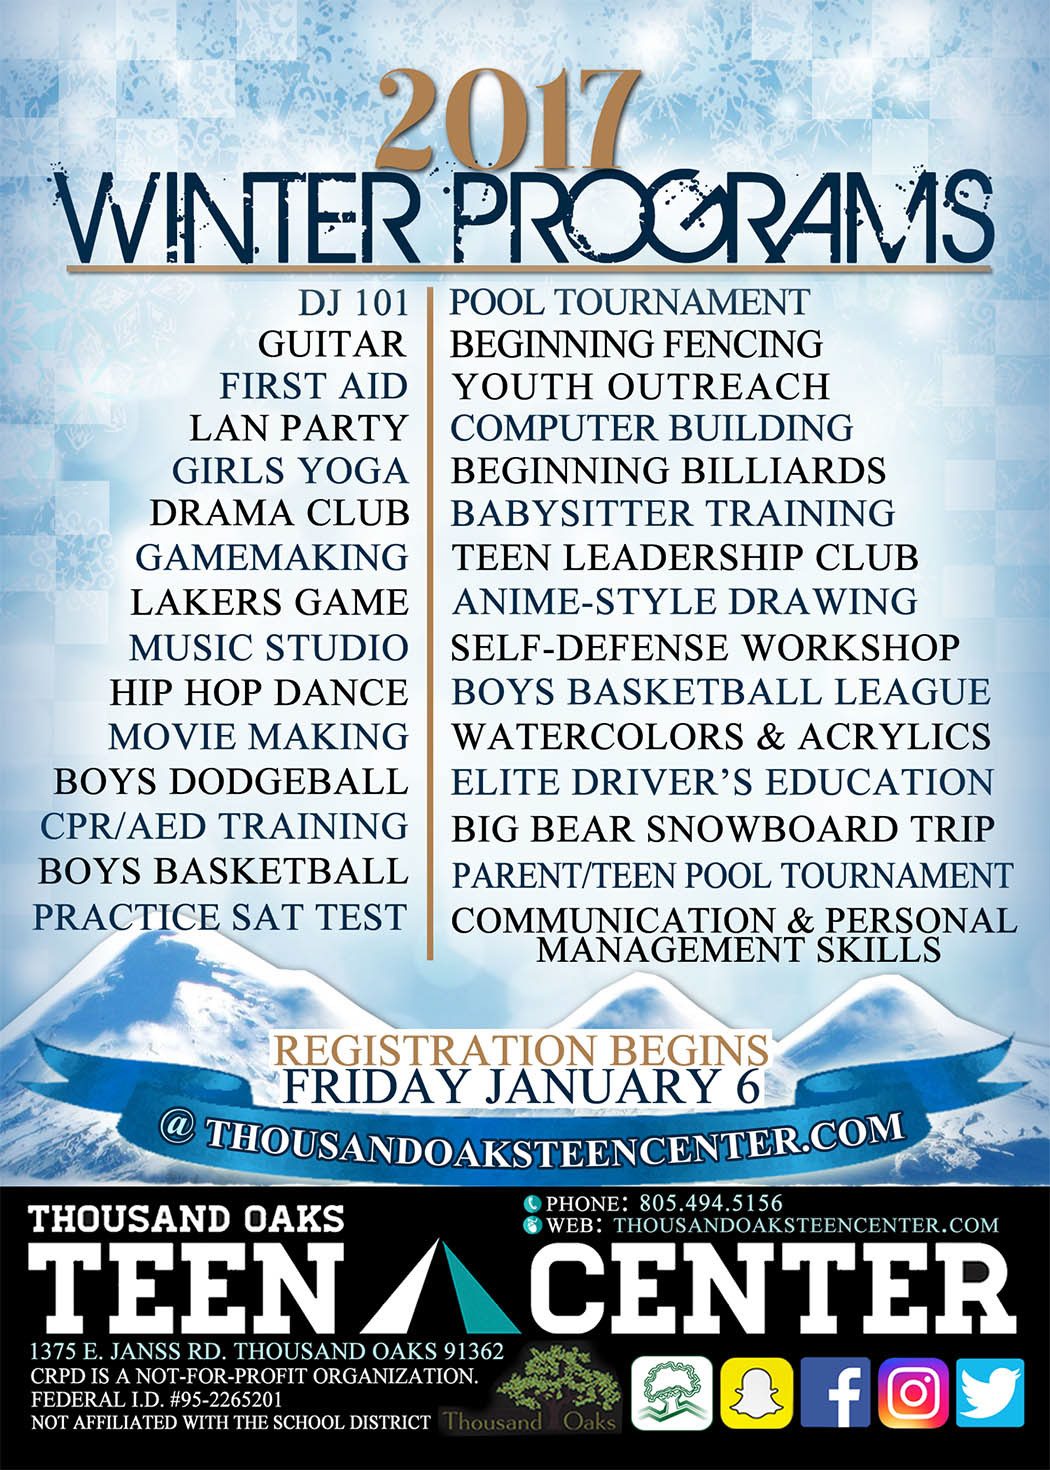 This Is A Flyer Design That I Created For The Thousand Oaks Teen Center,  Promoting Their 2017 Winter Programs.